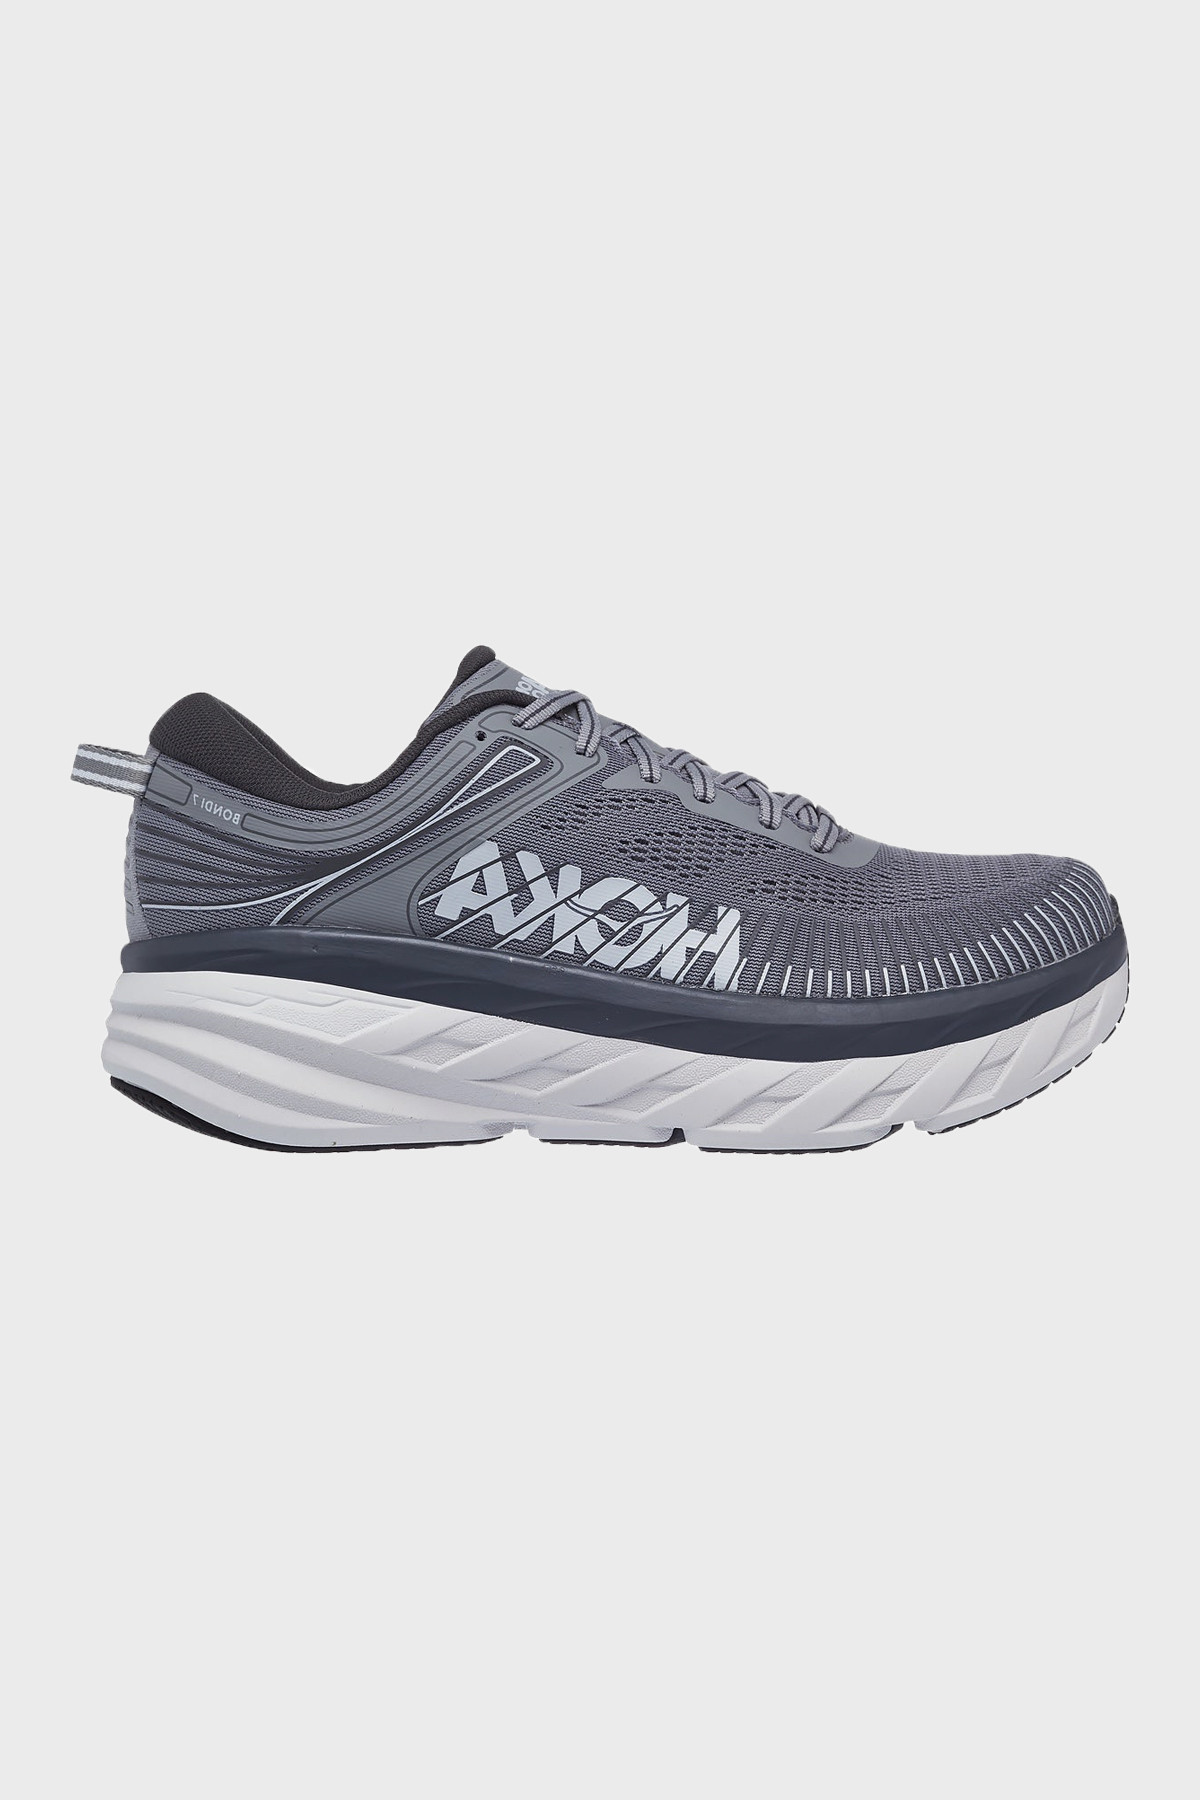 Hoka One One - Bondi 7 - DARK SHADOW